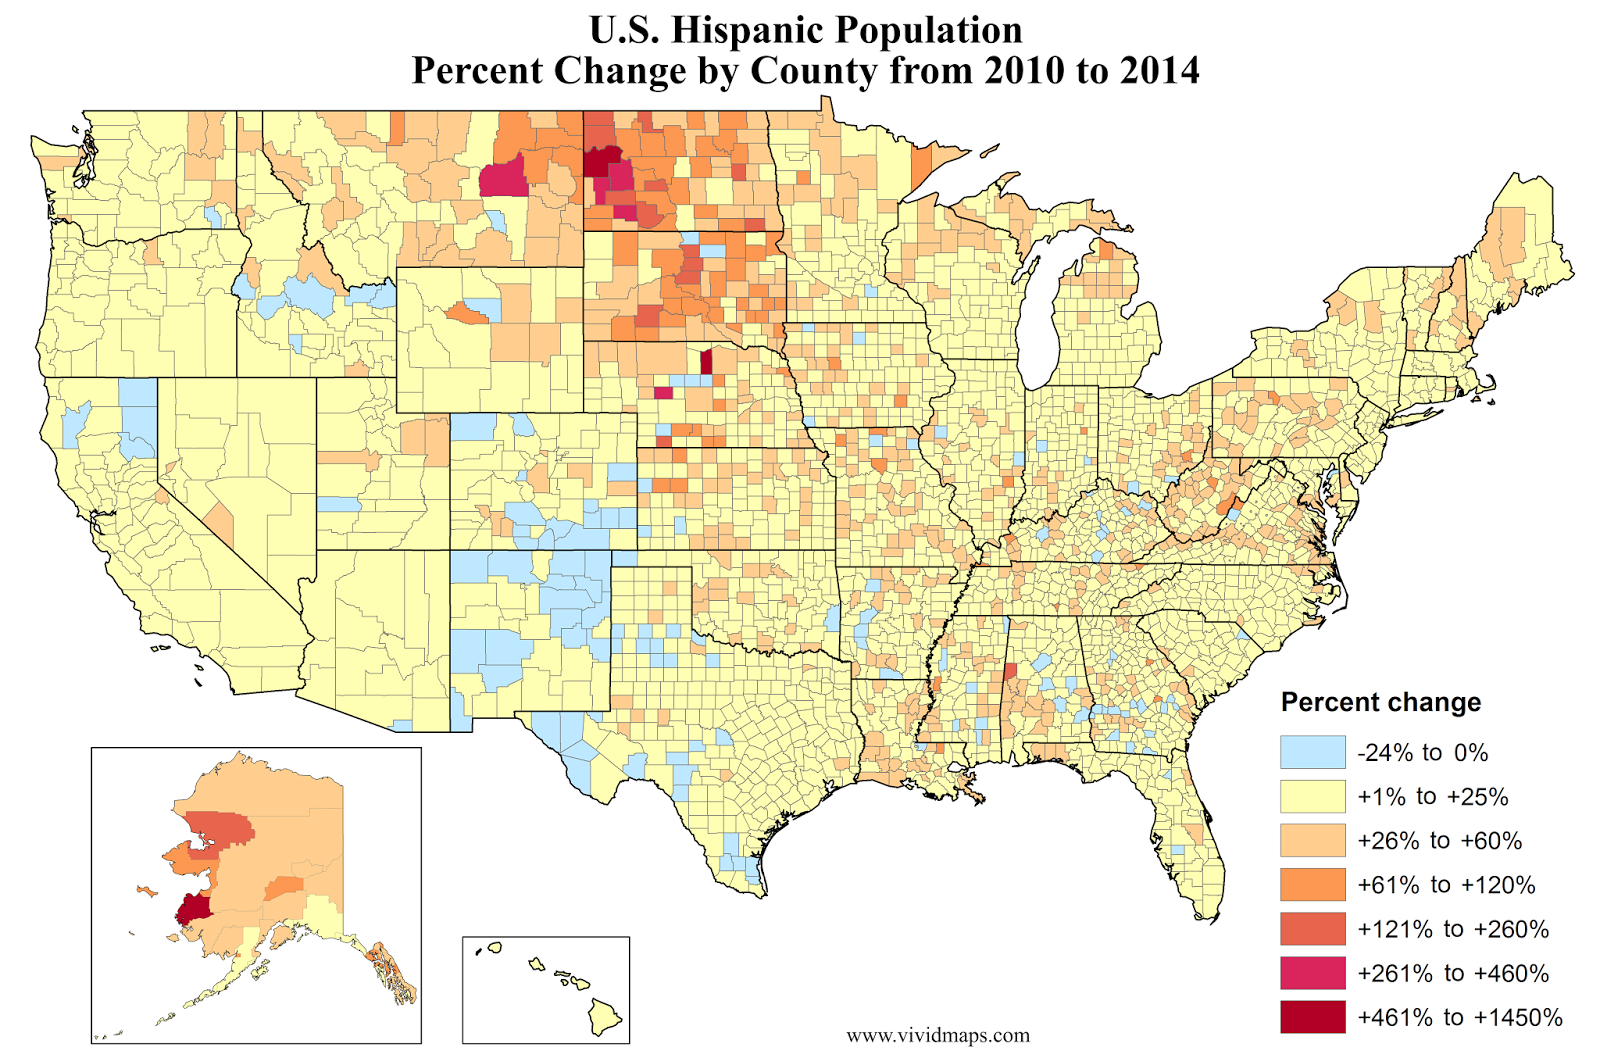 U.S. Hispanic population, percent increase by county